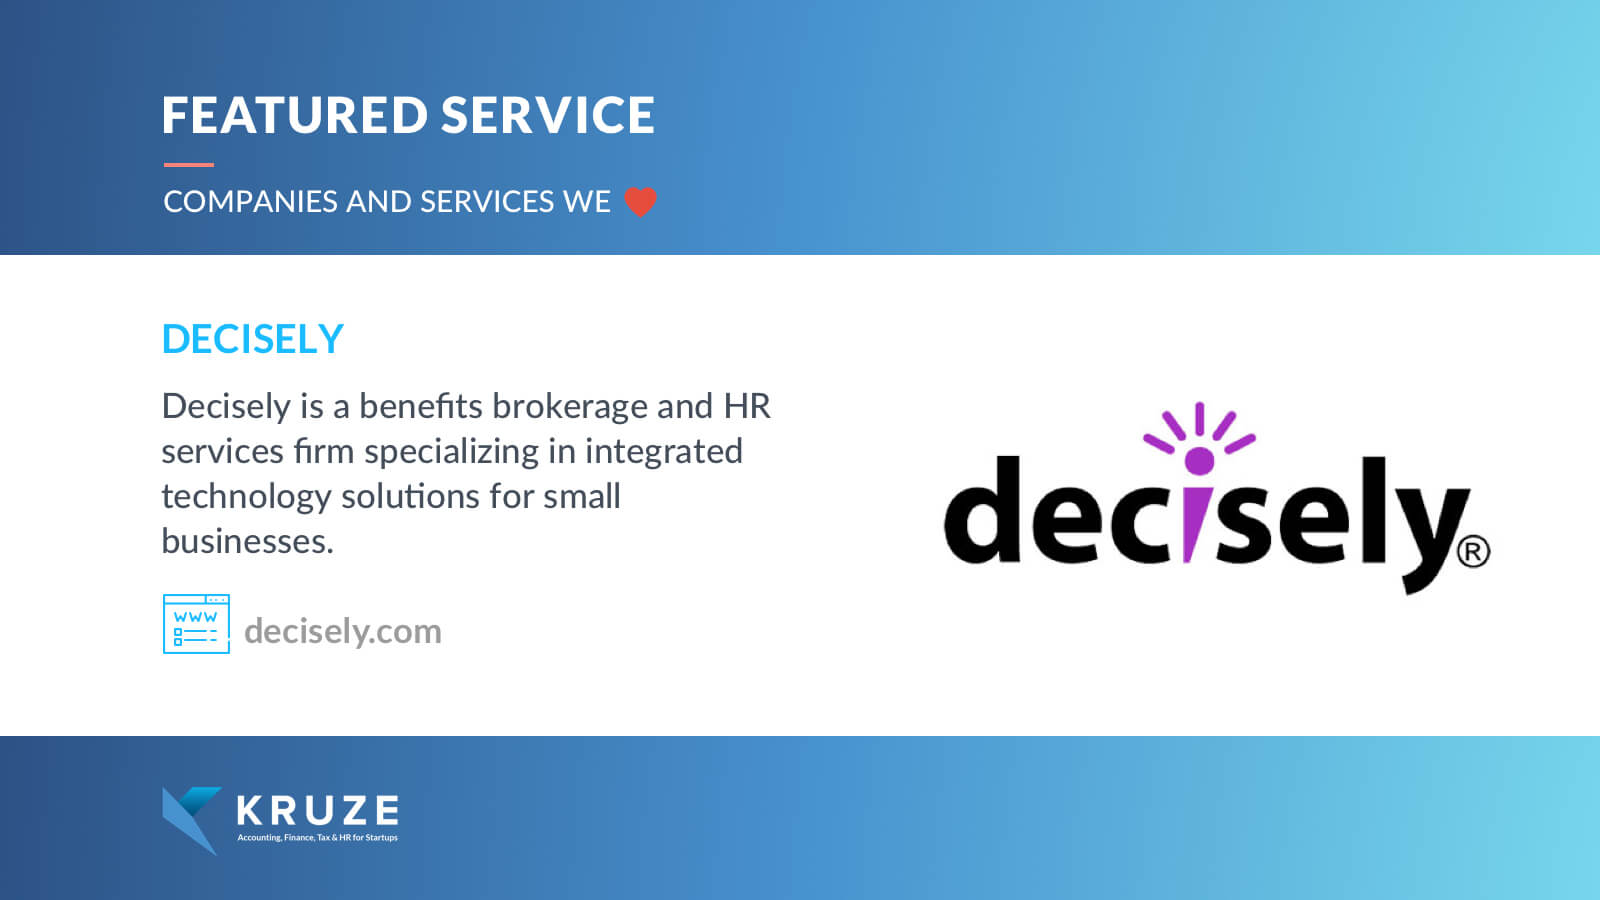 Featured Service - Decisely